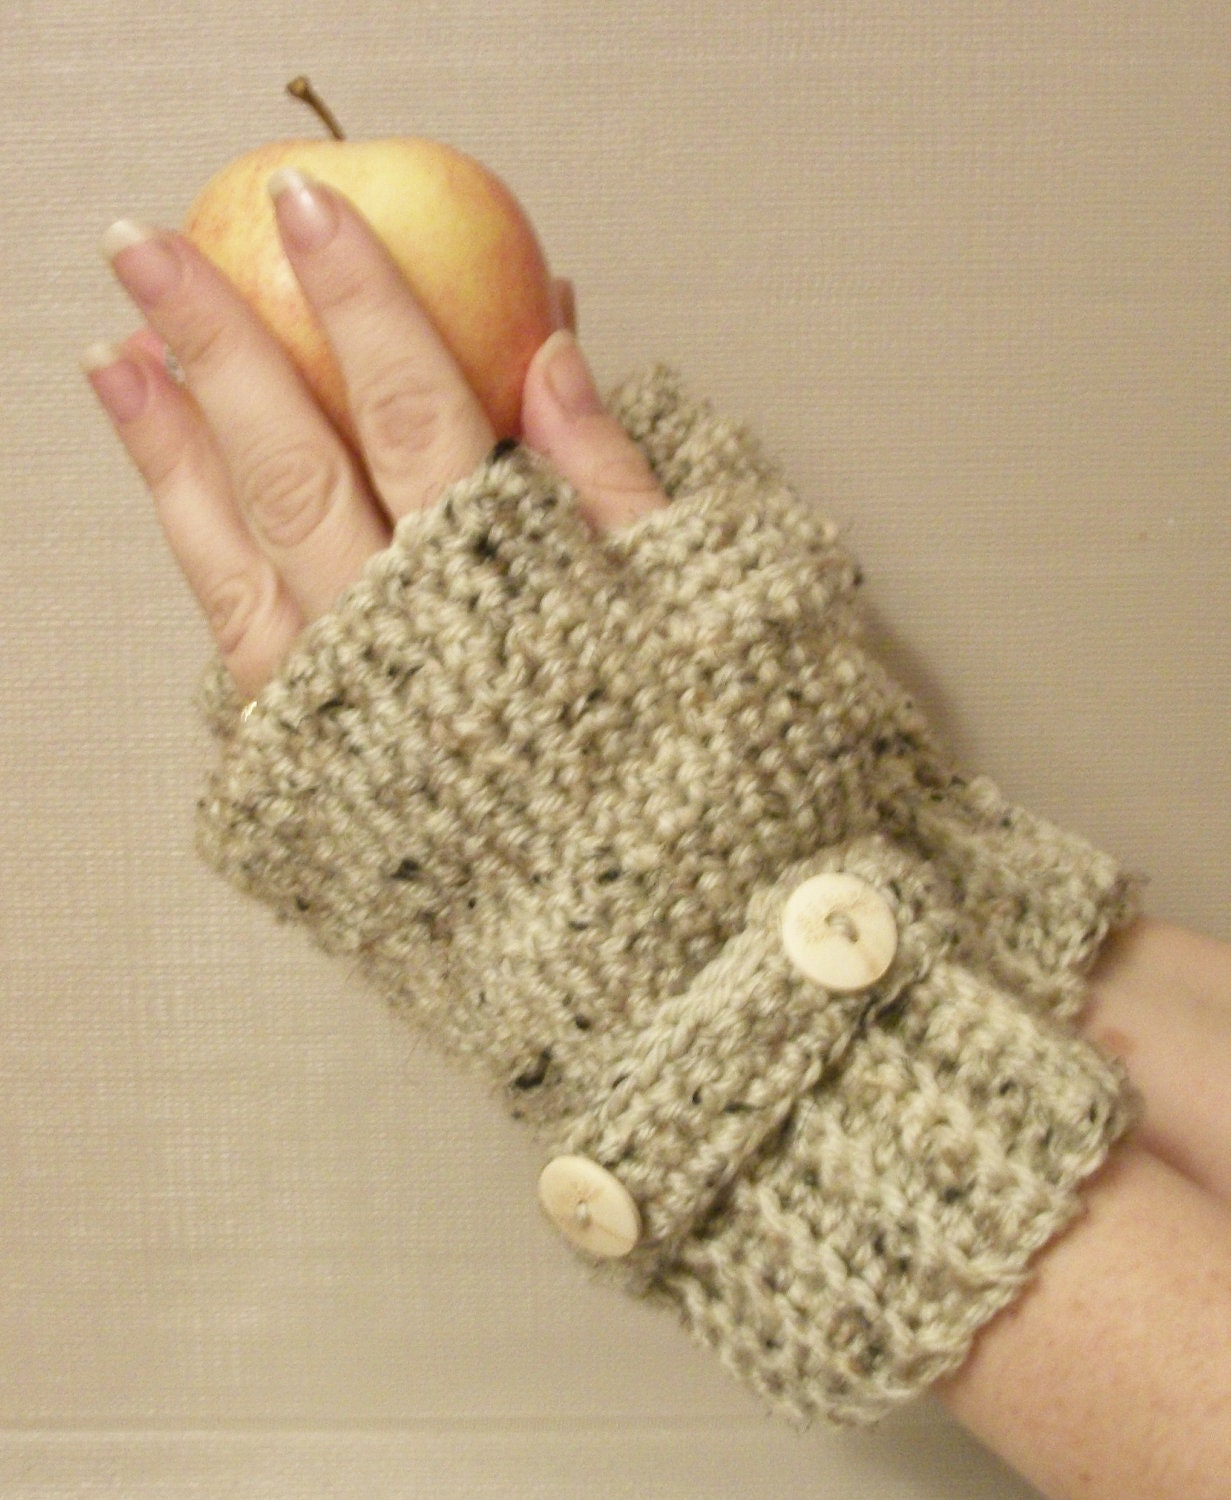 Crocheting Gloves Fingerless : https://www.etsy.com/listing/114732957/fingerless-gloves-wrist-warmers